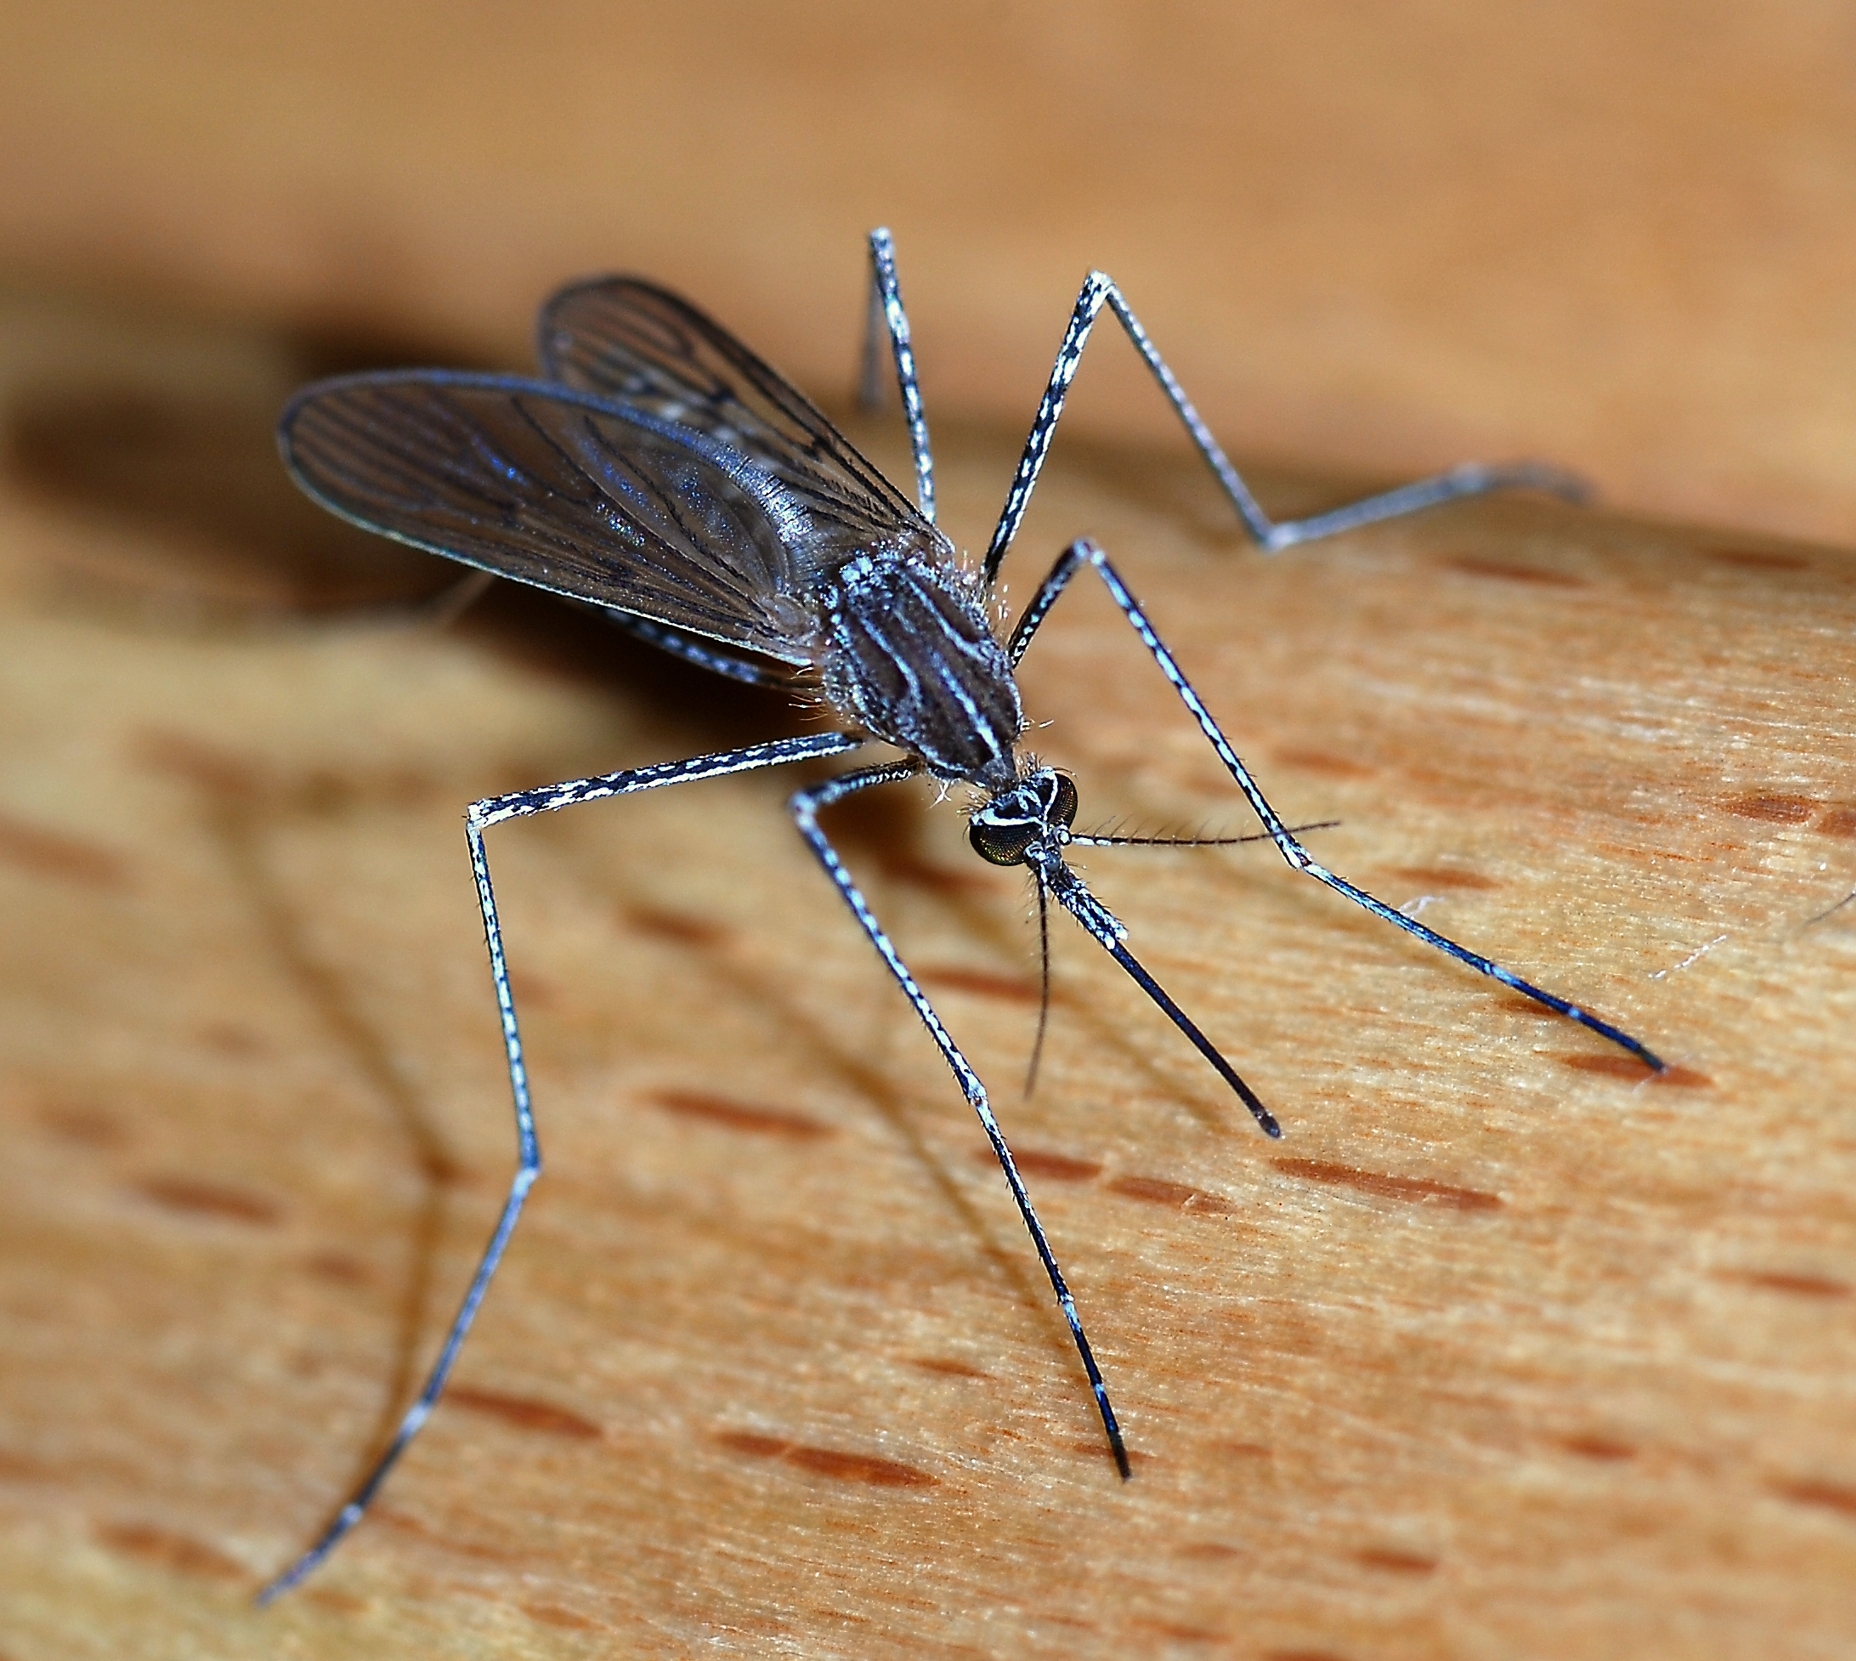 Repel Mosquitos Naturally with These Plants! | Montana Hunting and ...